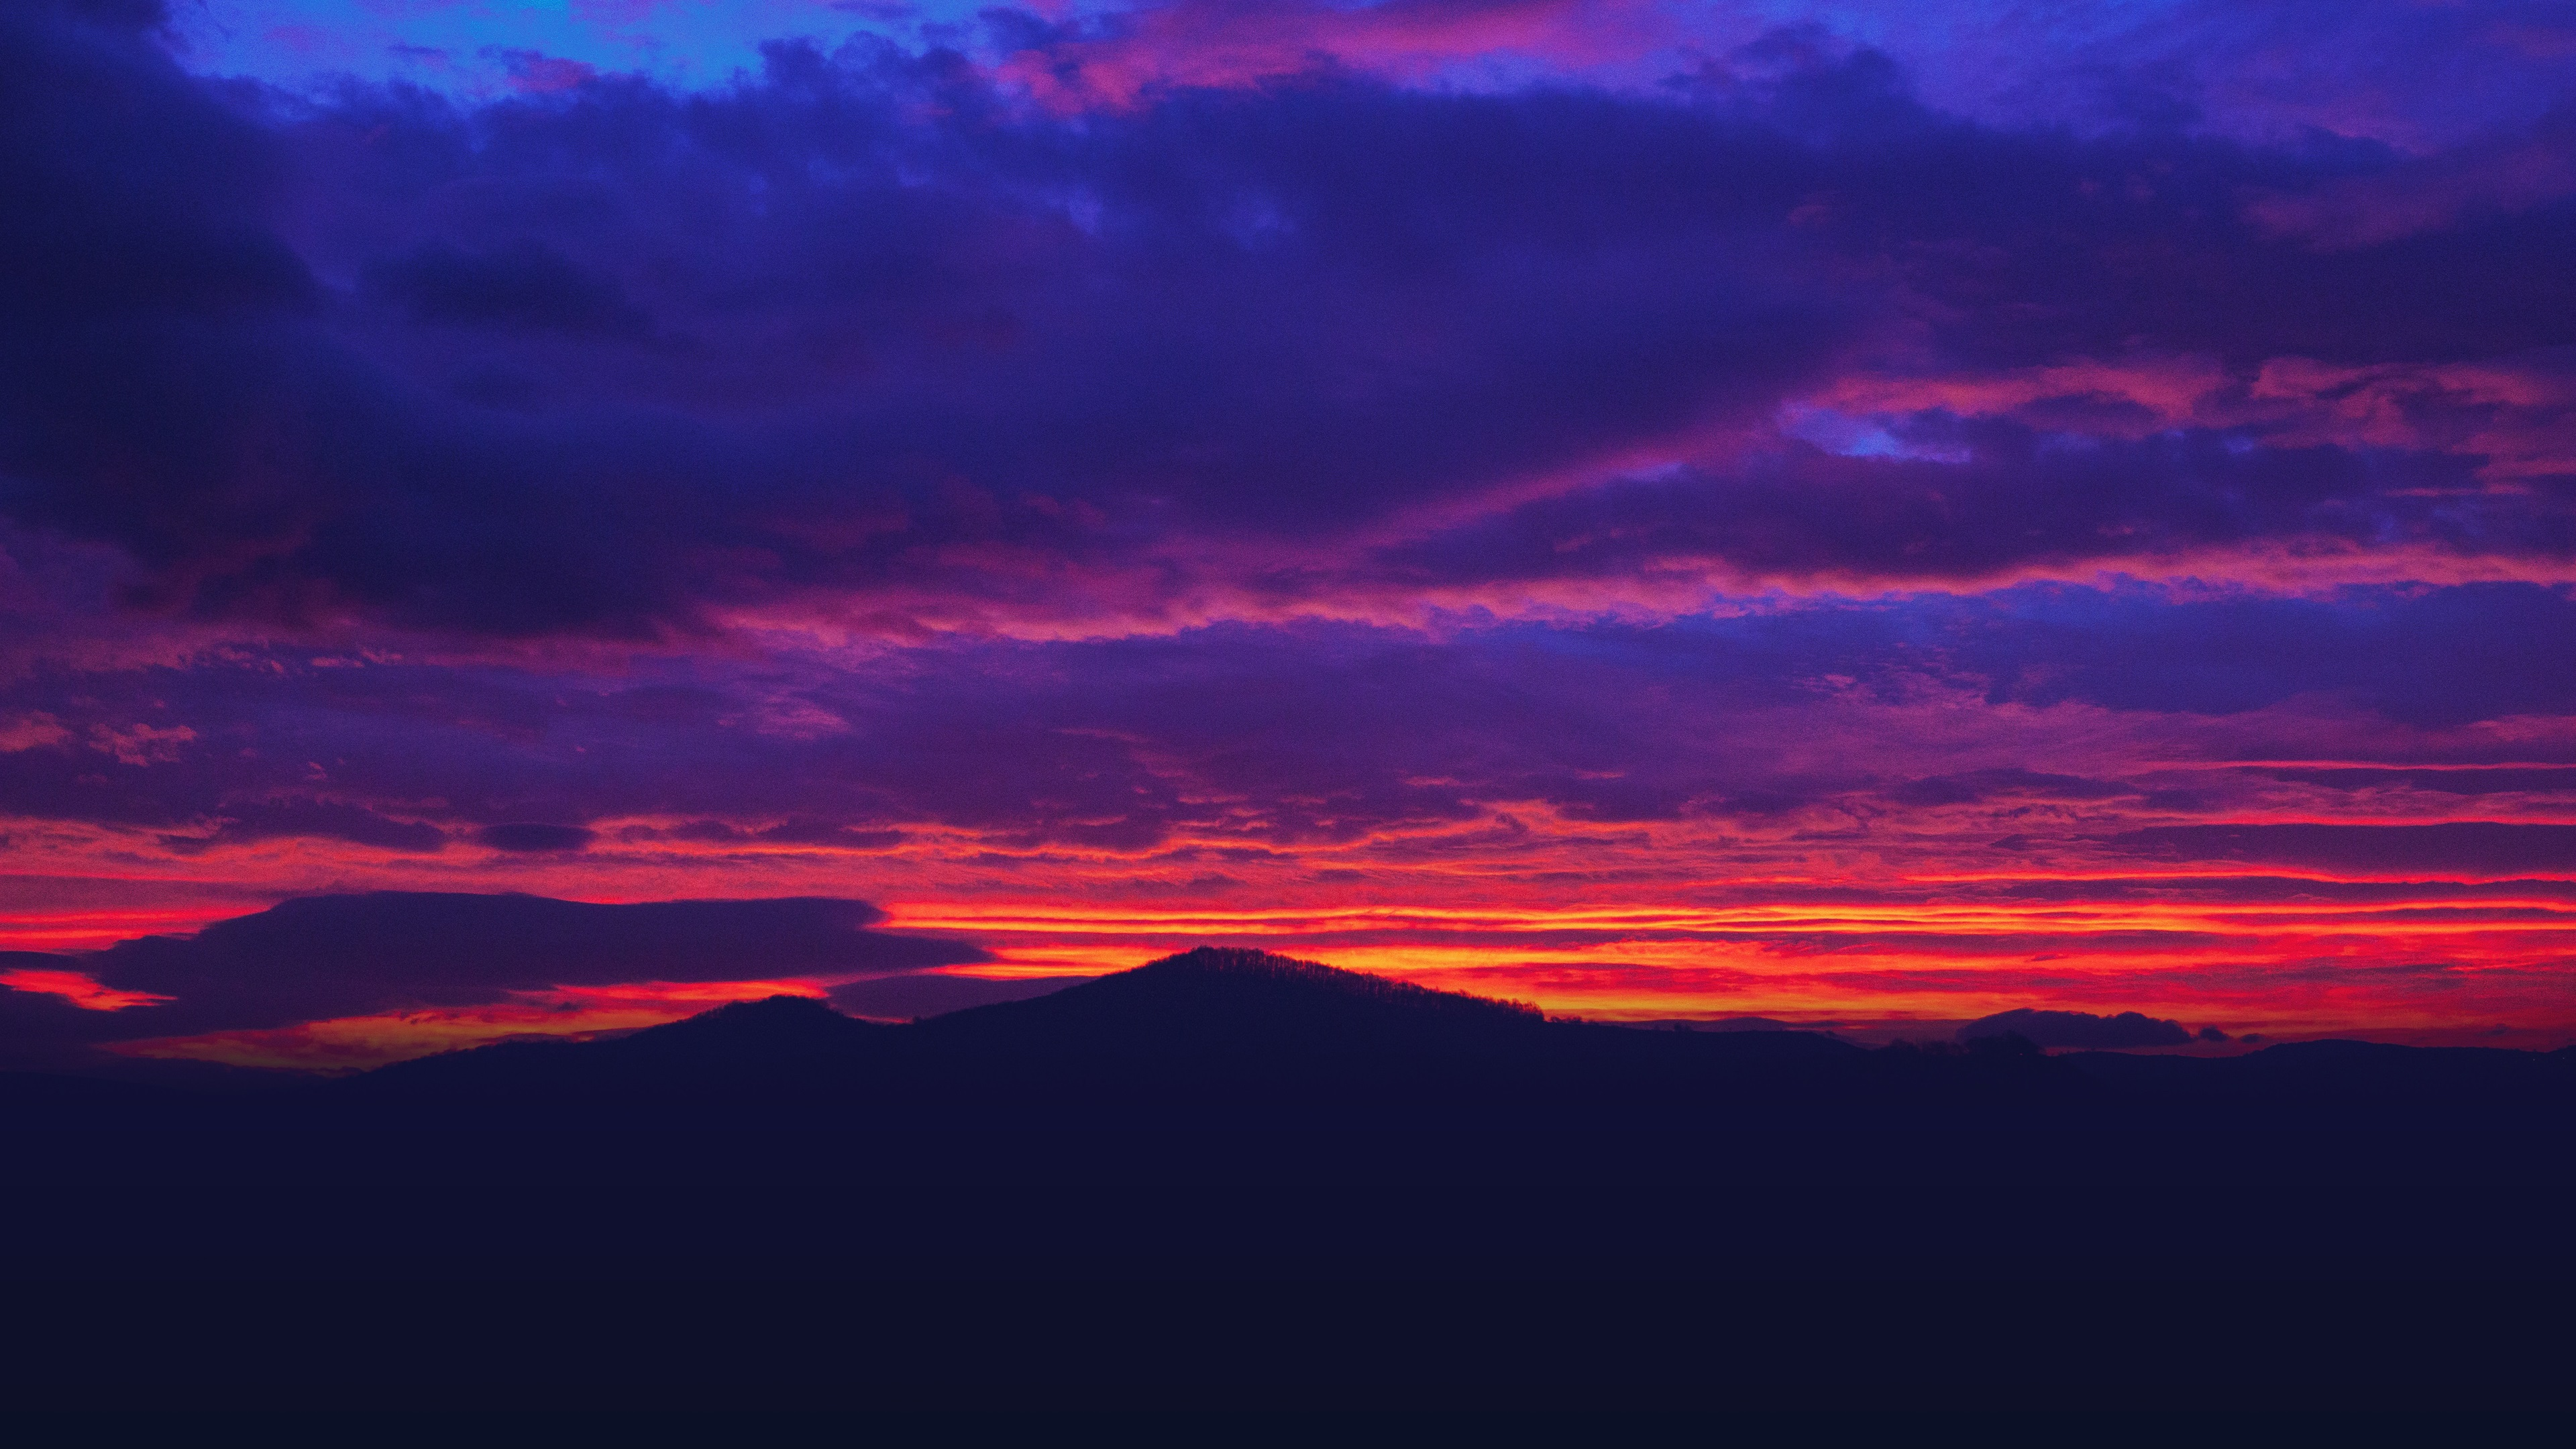 Beautiful Sunset Red Sky Clouds Mountains 1080x1920